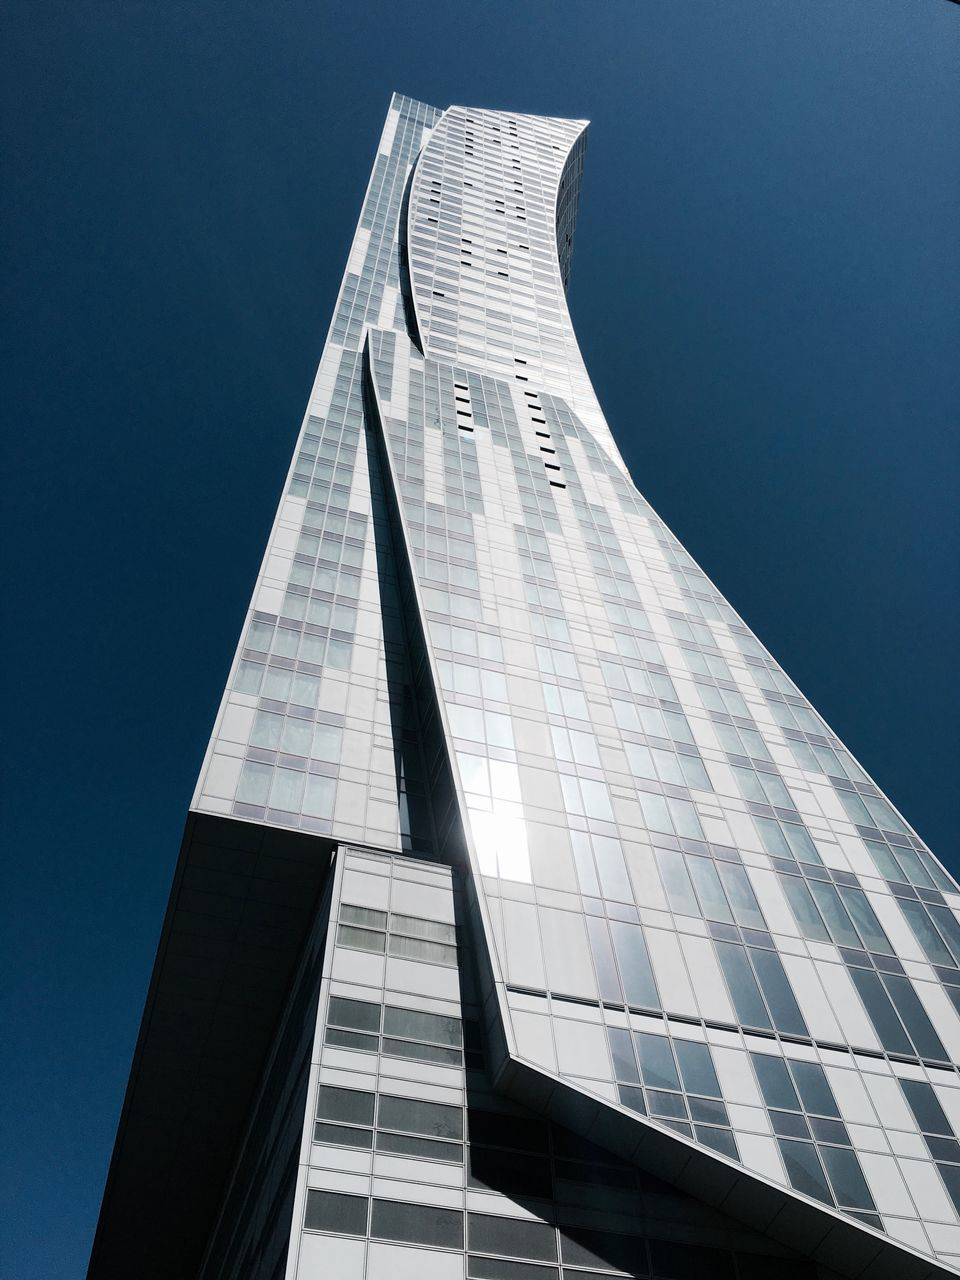 triangle shape, low angle view, no people, architecture, sky, building exterior, day, outdoors